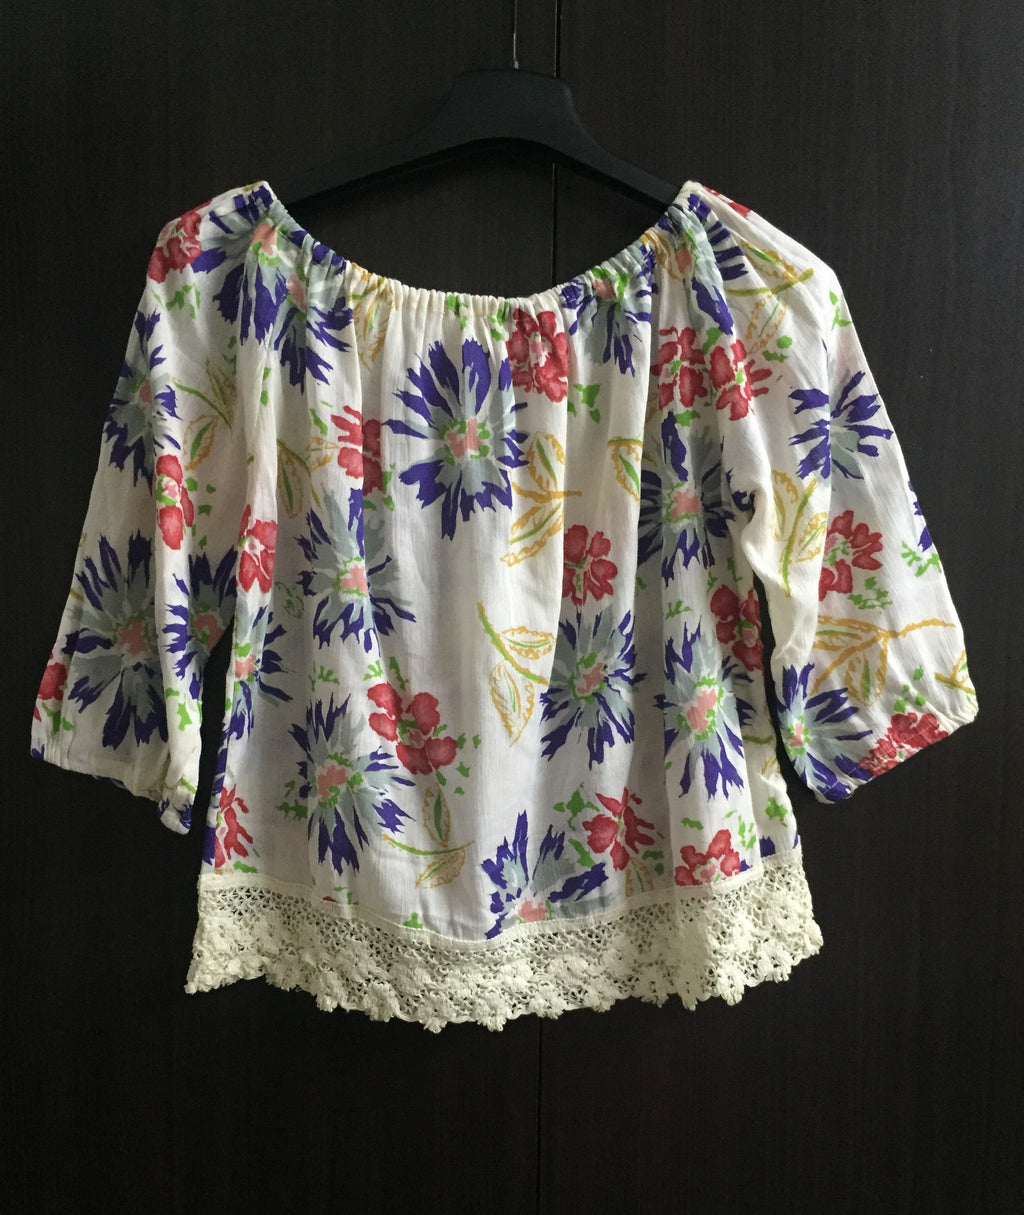 Vibrant Cream Off Shoulder Top - with lace